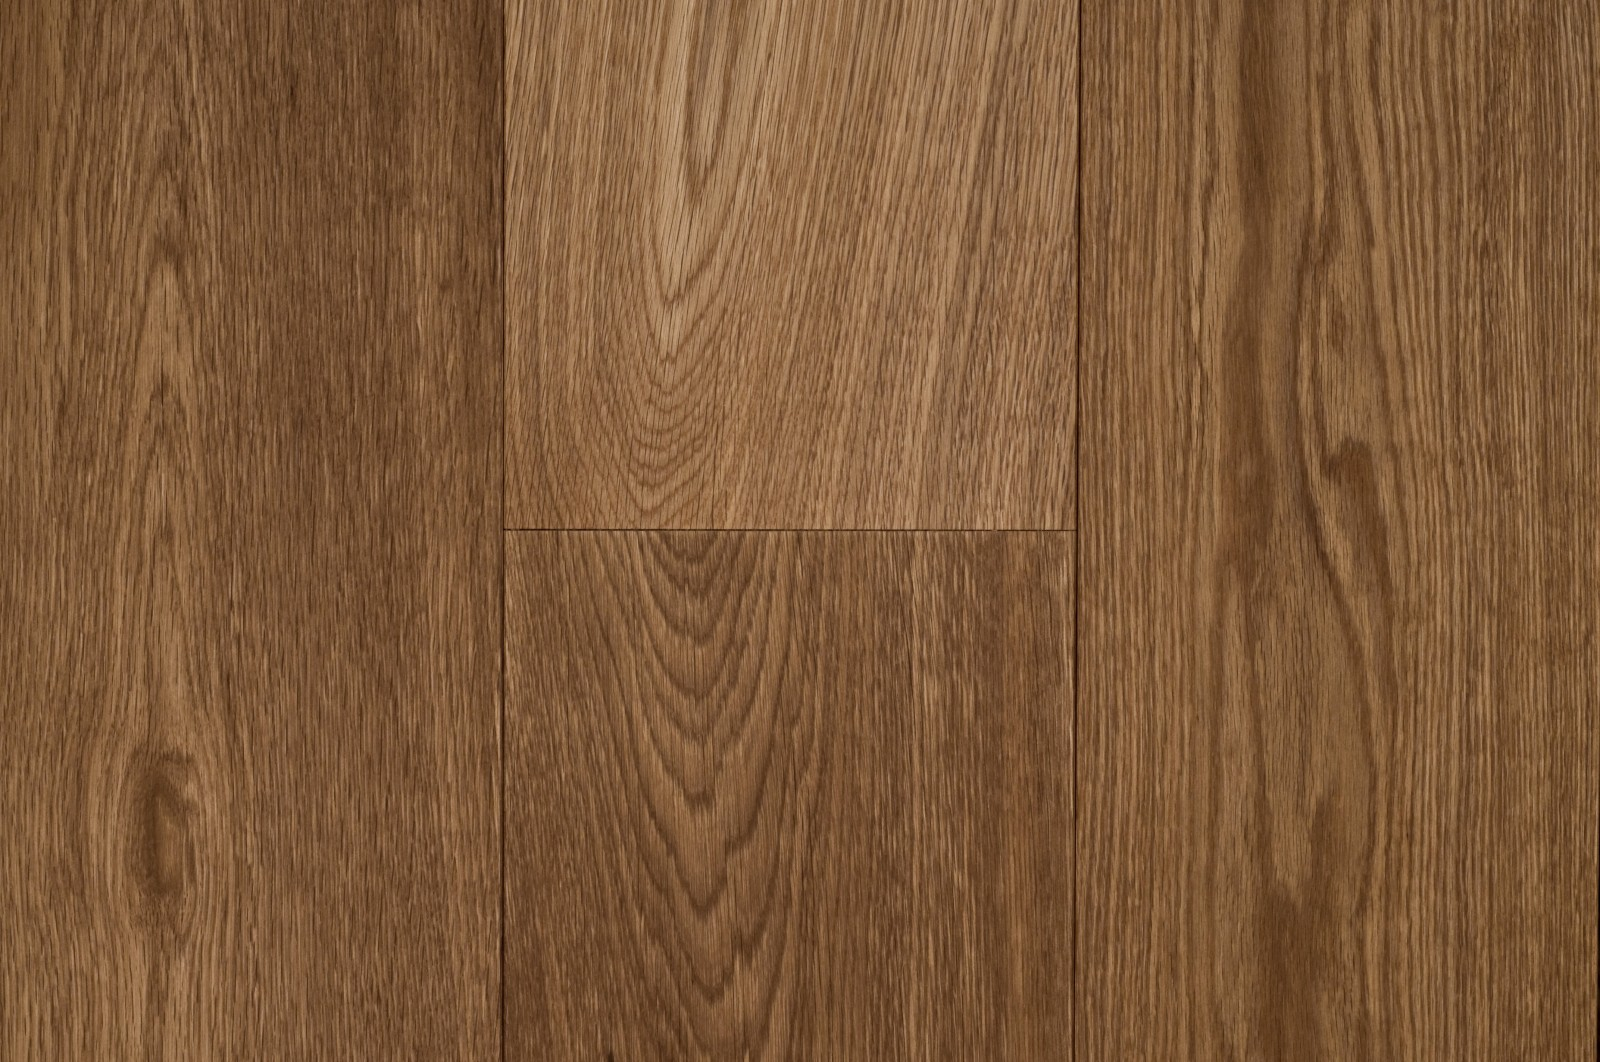 Duchateau Vernal Olde Dutch Hardwood Flooring 7 44 X 72